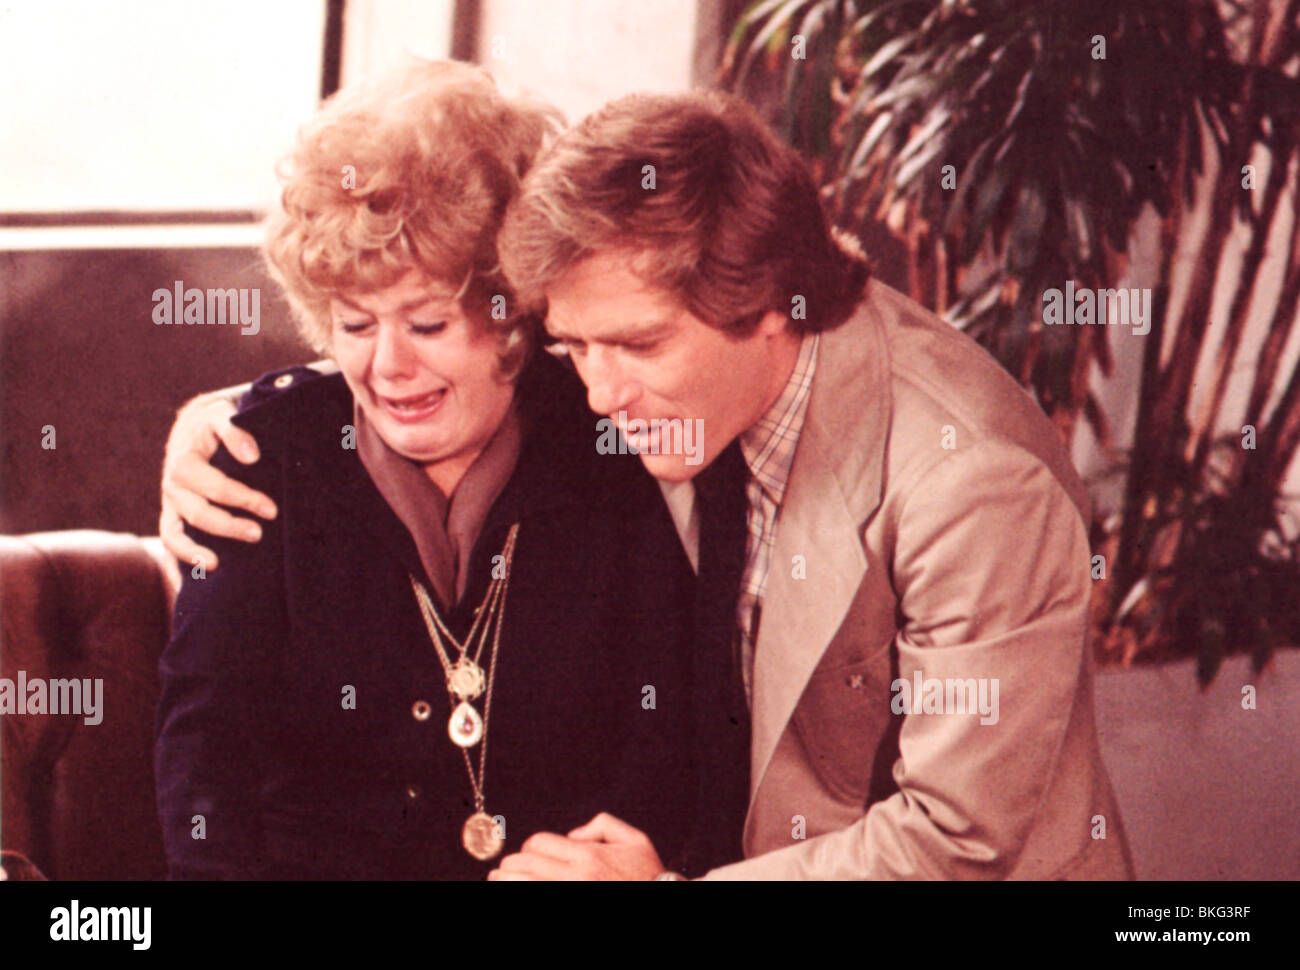 BLUME IN LOVE (1973) SHELLEY WINTERS, GEORGE SEGAL BLLV 003 - Stock Image